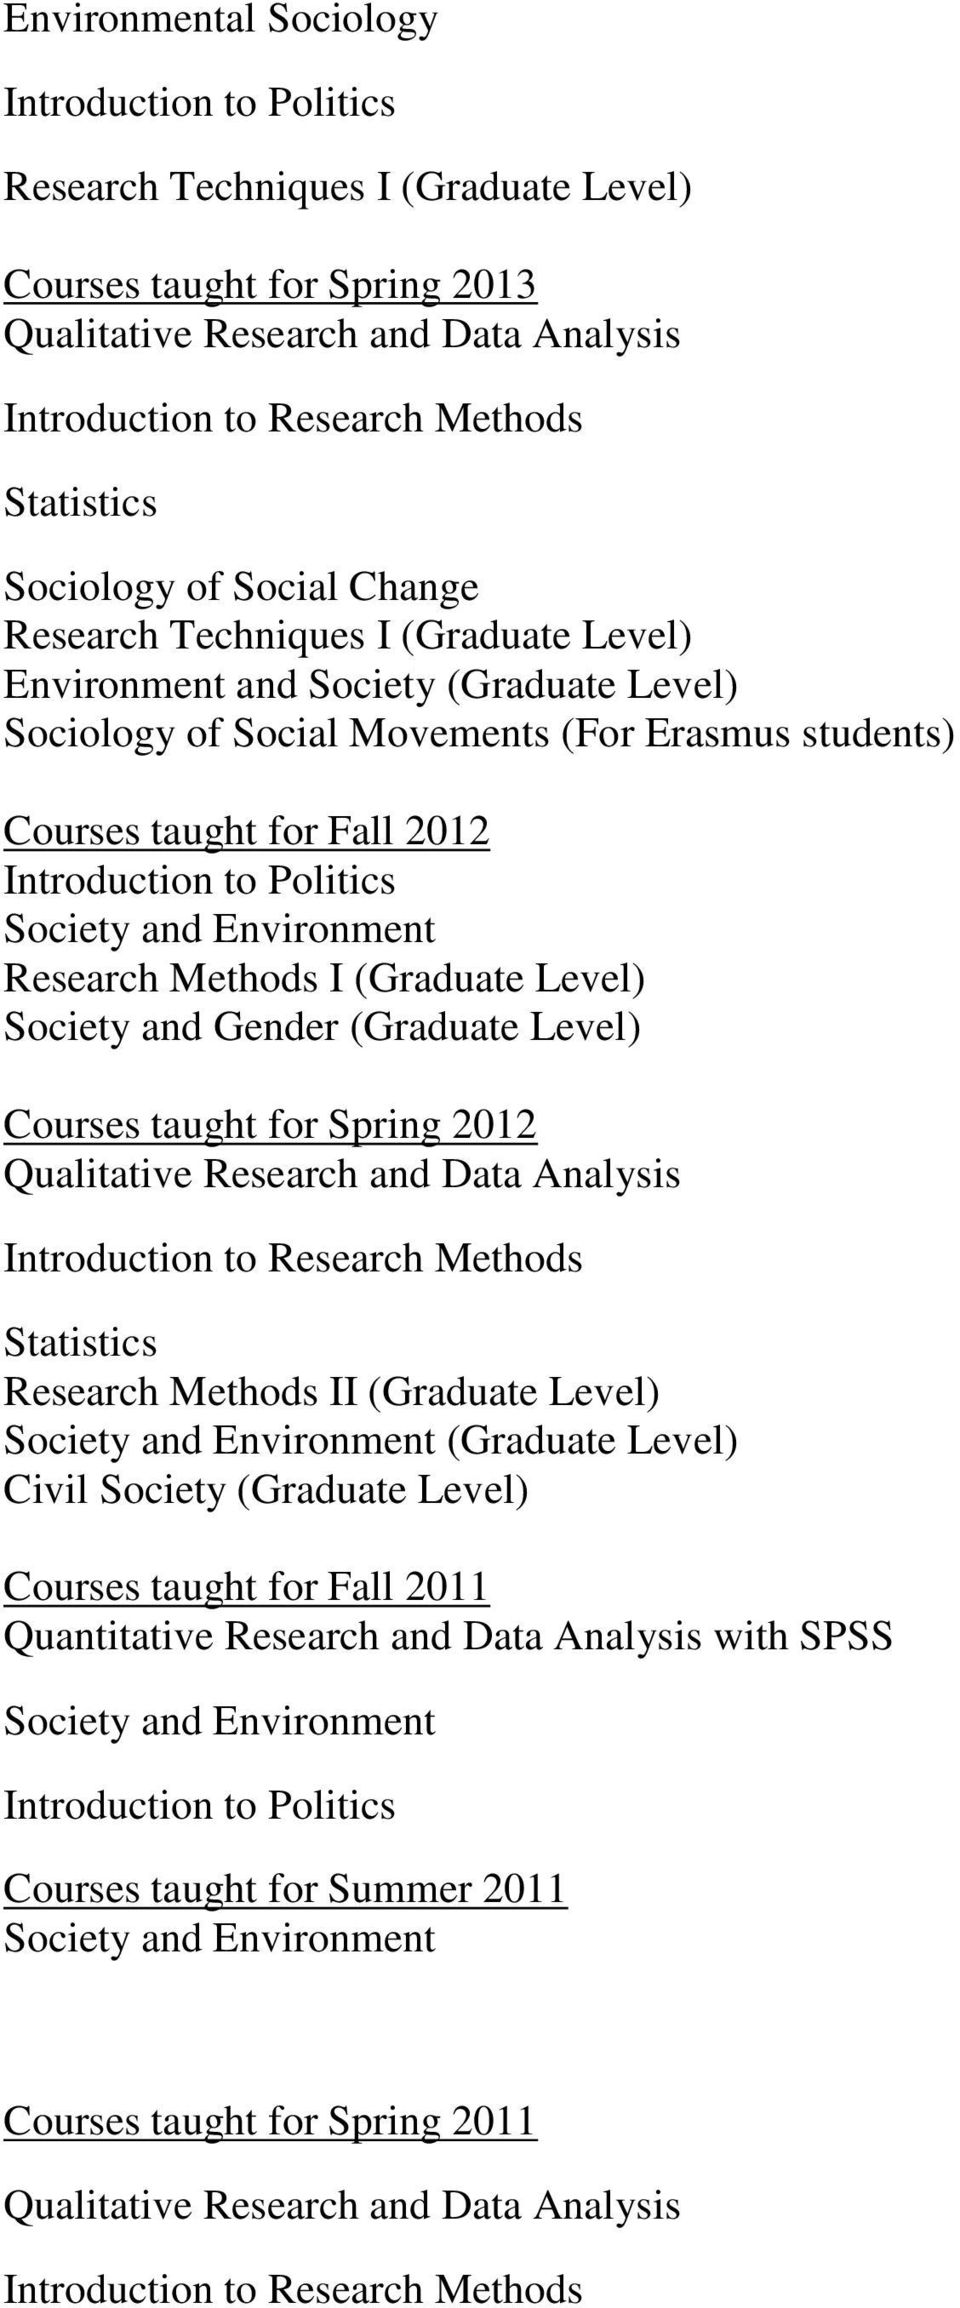 Environment Research Methods I (Graduate Level) Society and Gender (Graduate Level) Courses taught for Spring 2012 Qualitative Research and Data Analysis Research Methods II (Graduate Level) Society